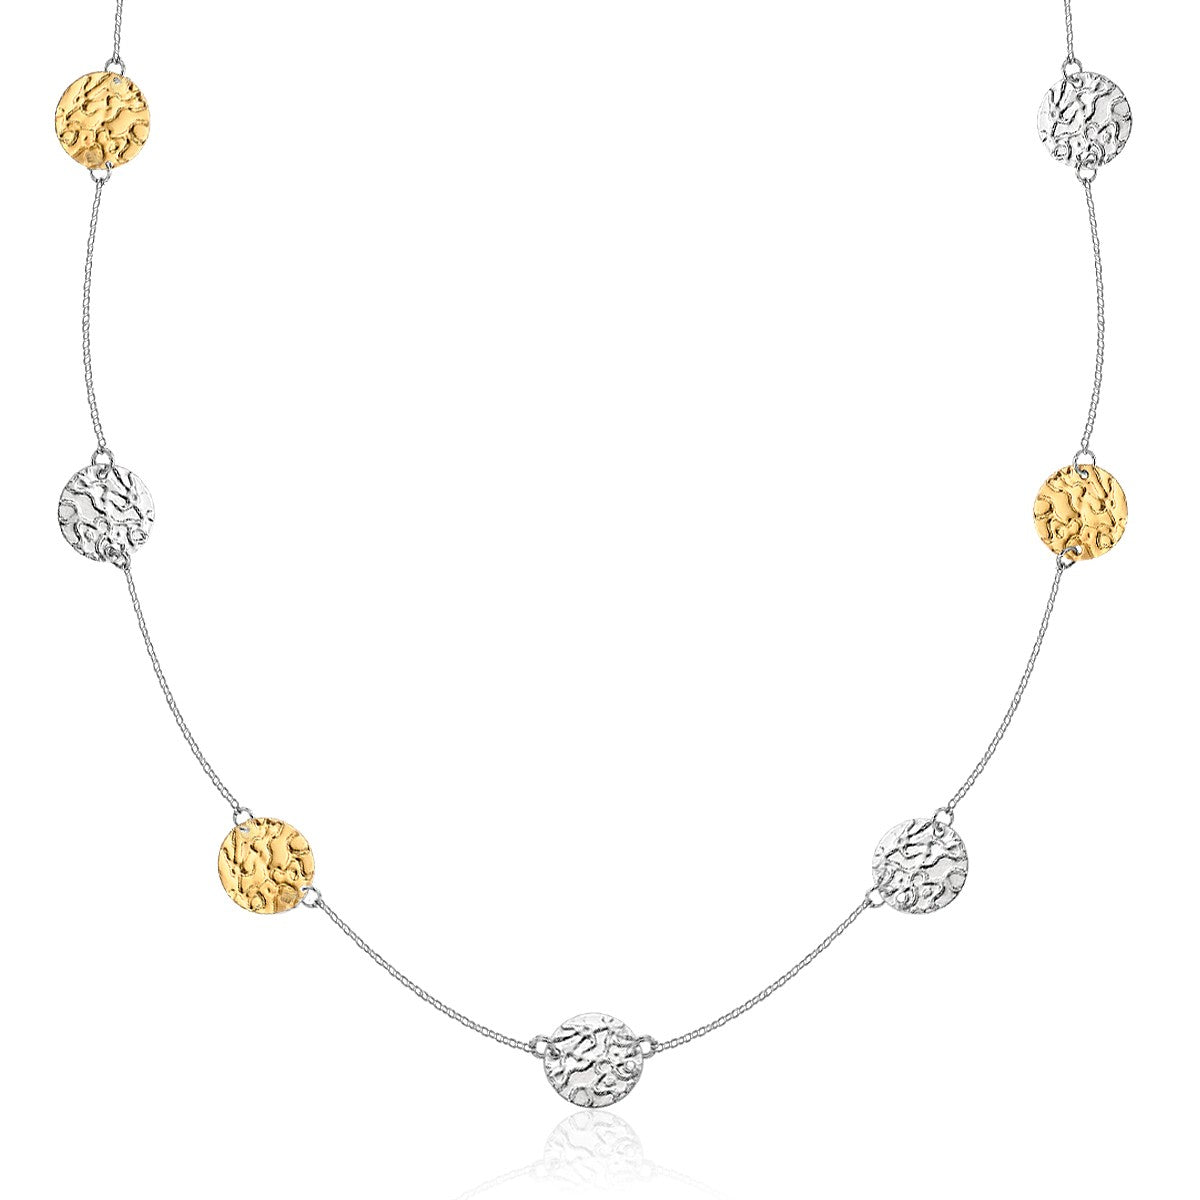 14k Yellow Gold & Sterling Silver 32 inches Reticulated Disc Station Necklace